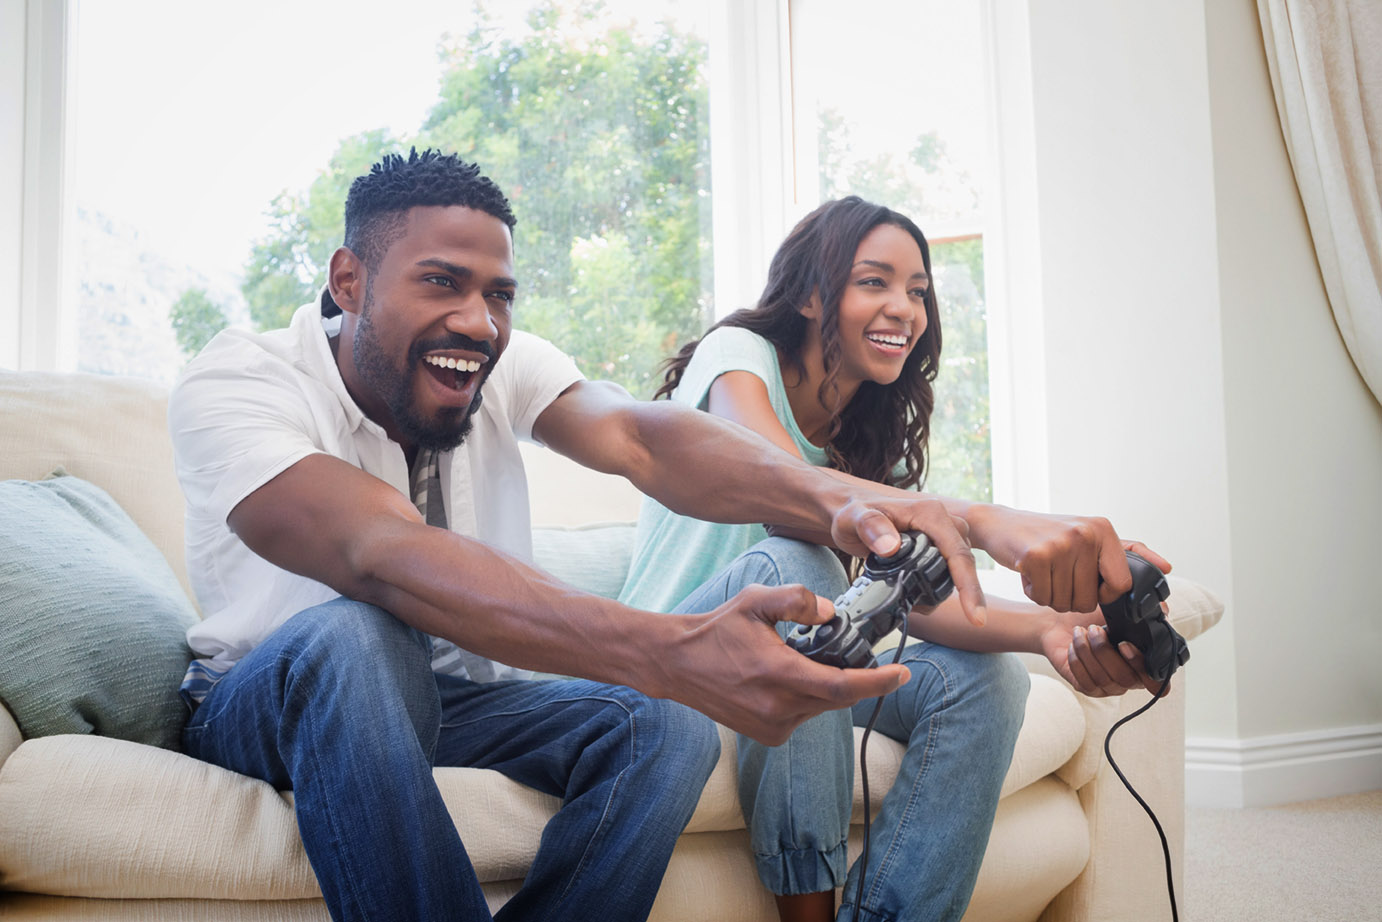 Couple playing video games together on a couch